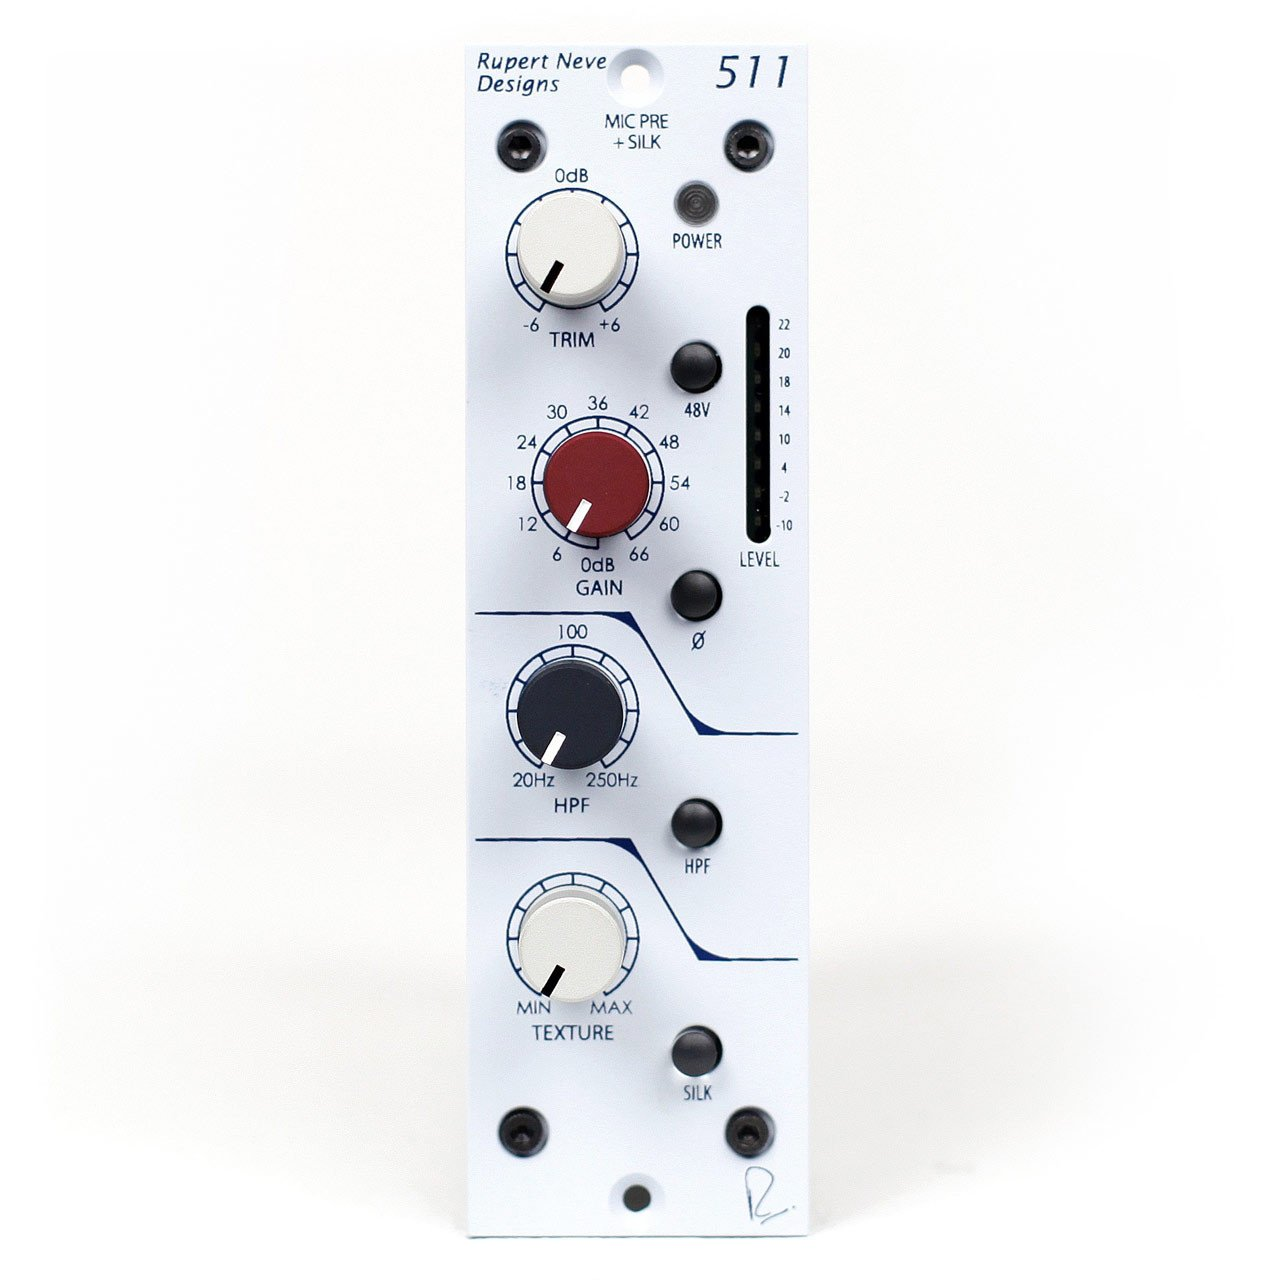 500 Series - Rupert Neve Designs Portico 511 500 Series Mic Pre With Silk